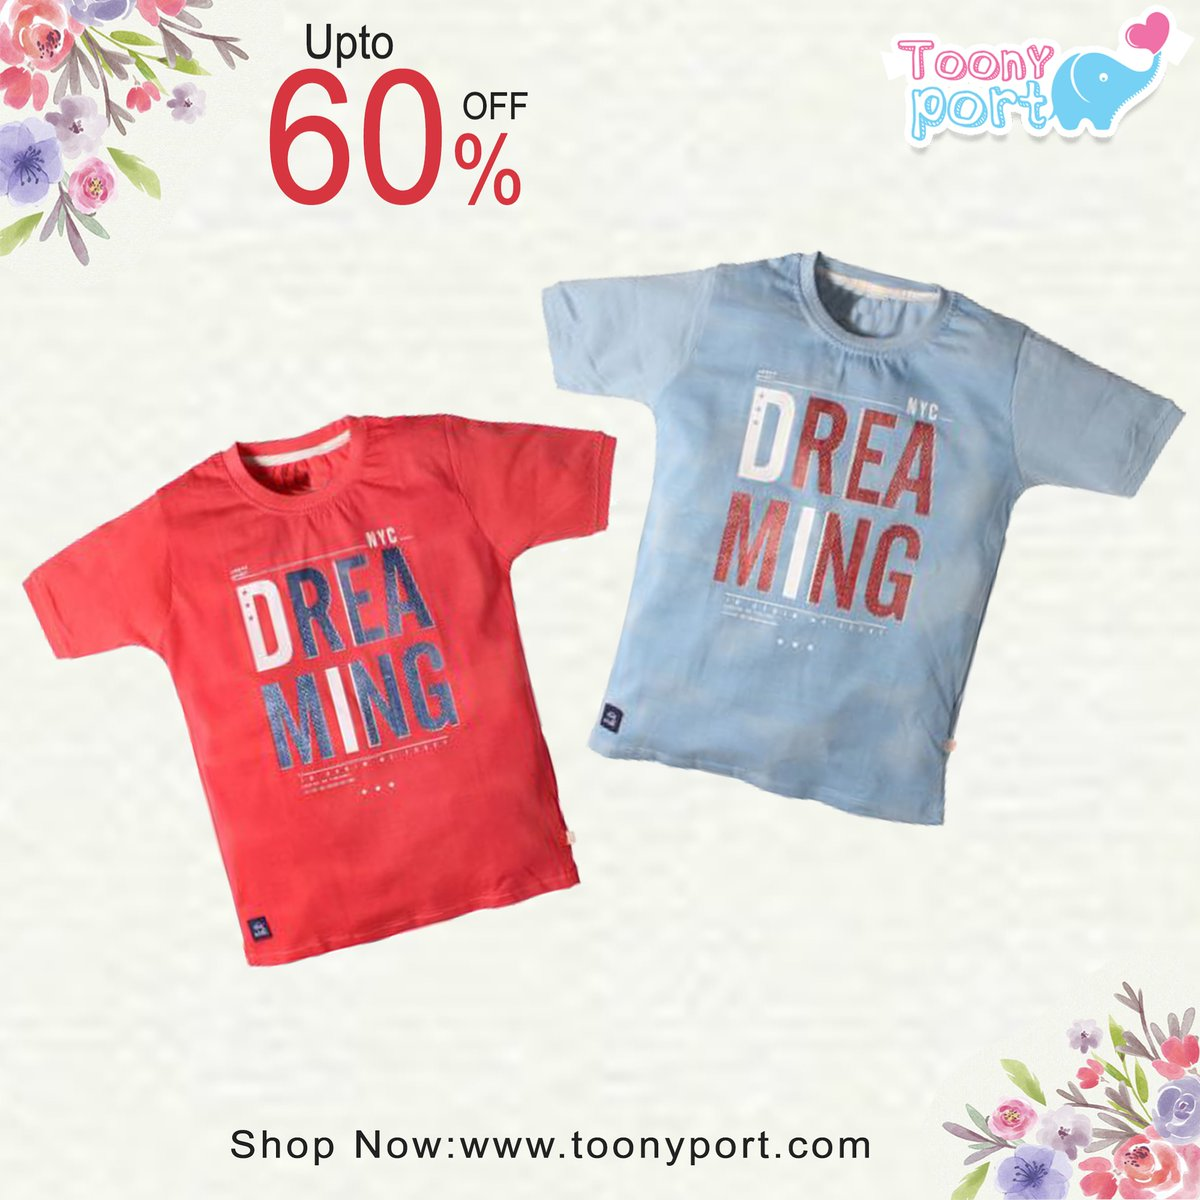 Order Now on http://www.toonyport.com  or whats app on 9051054320 #trendybaby #summercollection #summerdress #boysummerfashion #summertrends #onlinedresses #onlinebabyshop #babyonlinestore #tshirts #boystshirtpic.twitter.com/eO6GLoJNUm